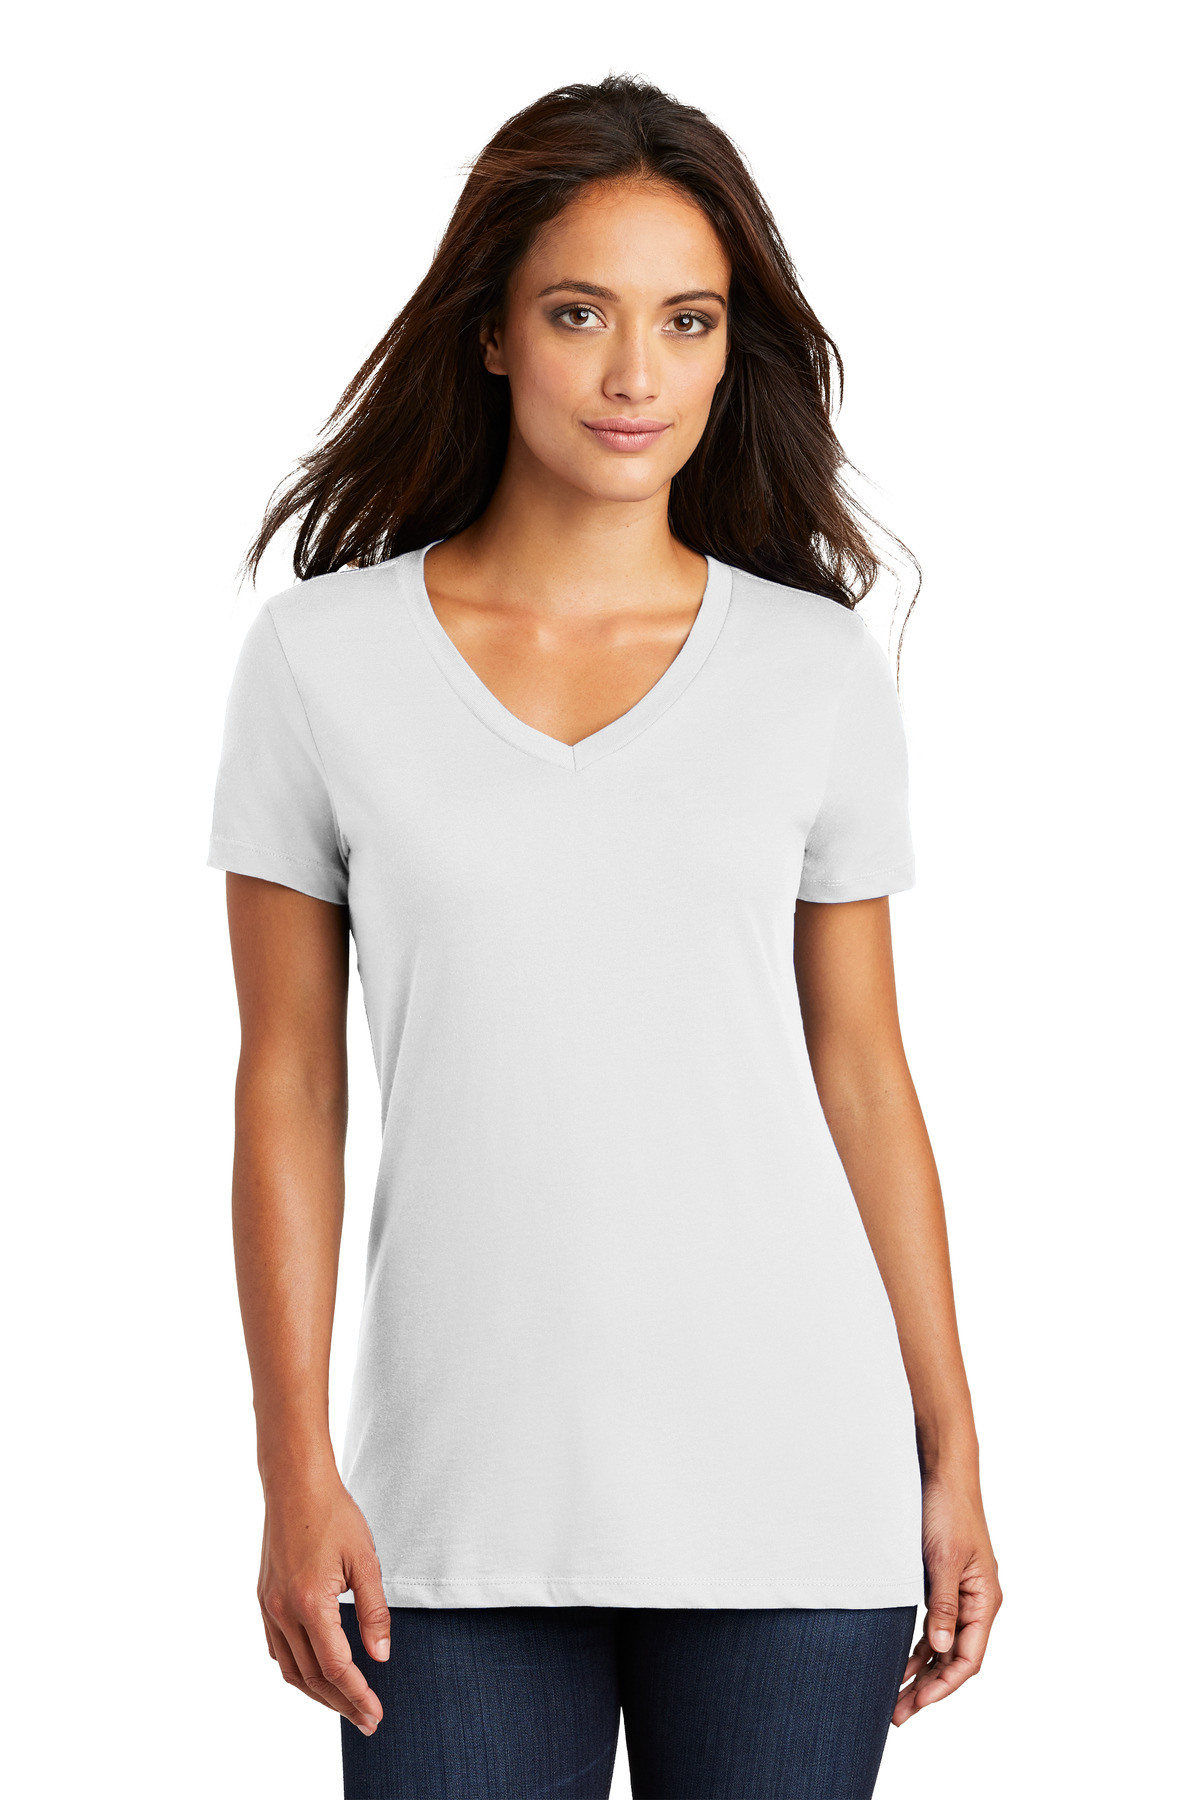 District - Women''s Perfect Weight V-Neck Tee. DM1170L